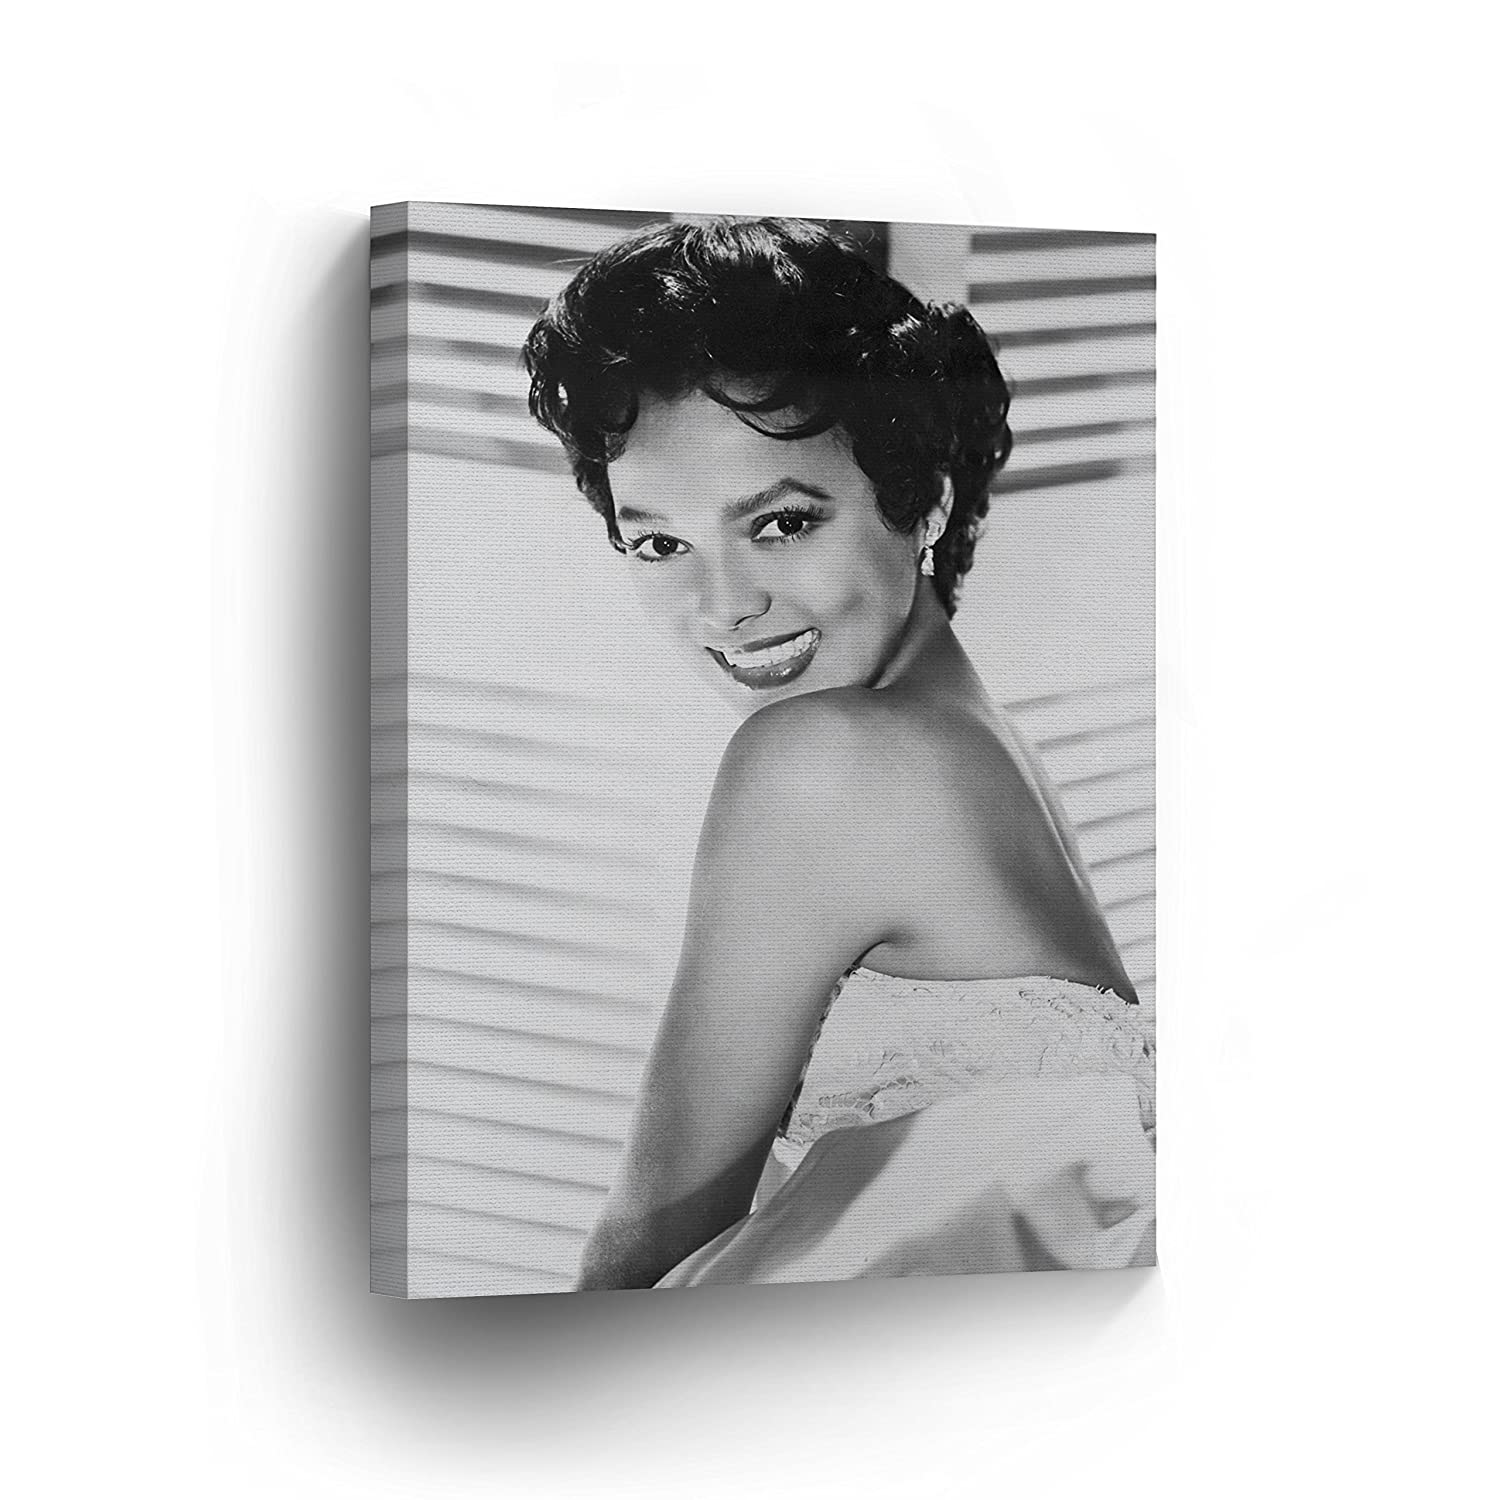 Dorothy dandridge beautiful smile black white wall art canvas print beautiful african american icon artwork home decor wrapped wood stretched ready to